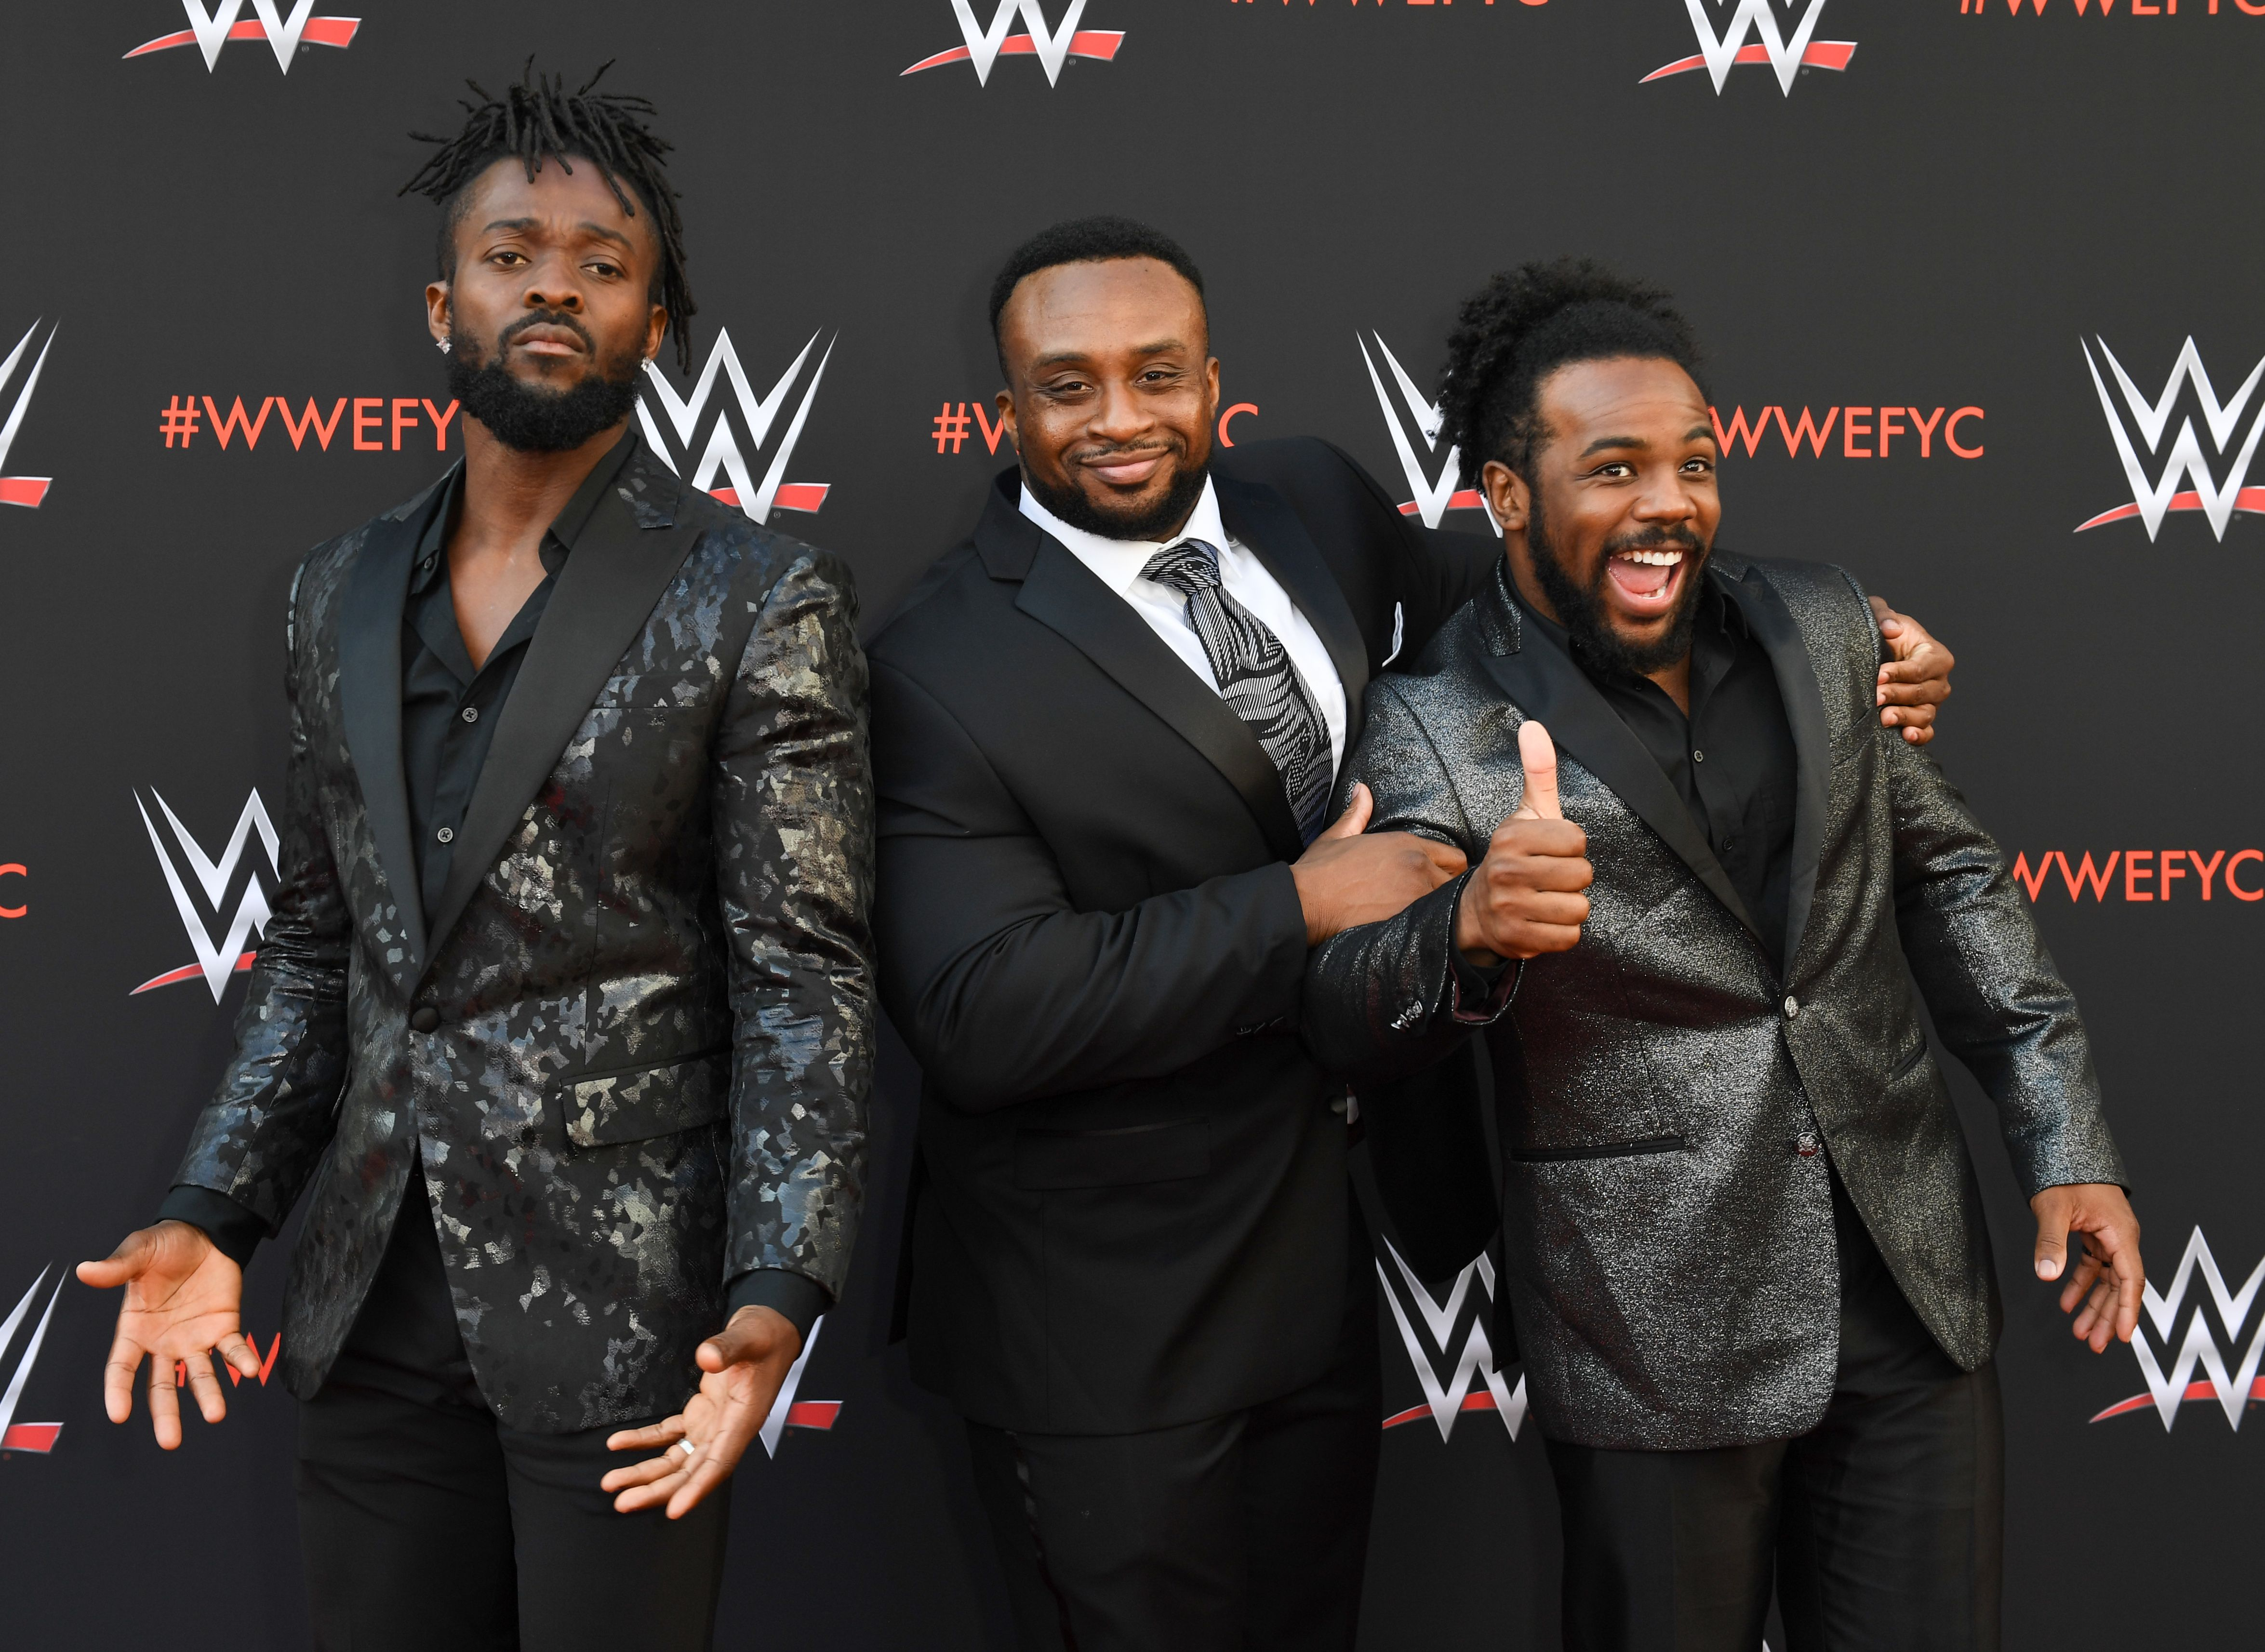 WWE For Your Consideration Red Carpet